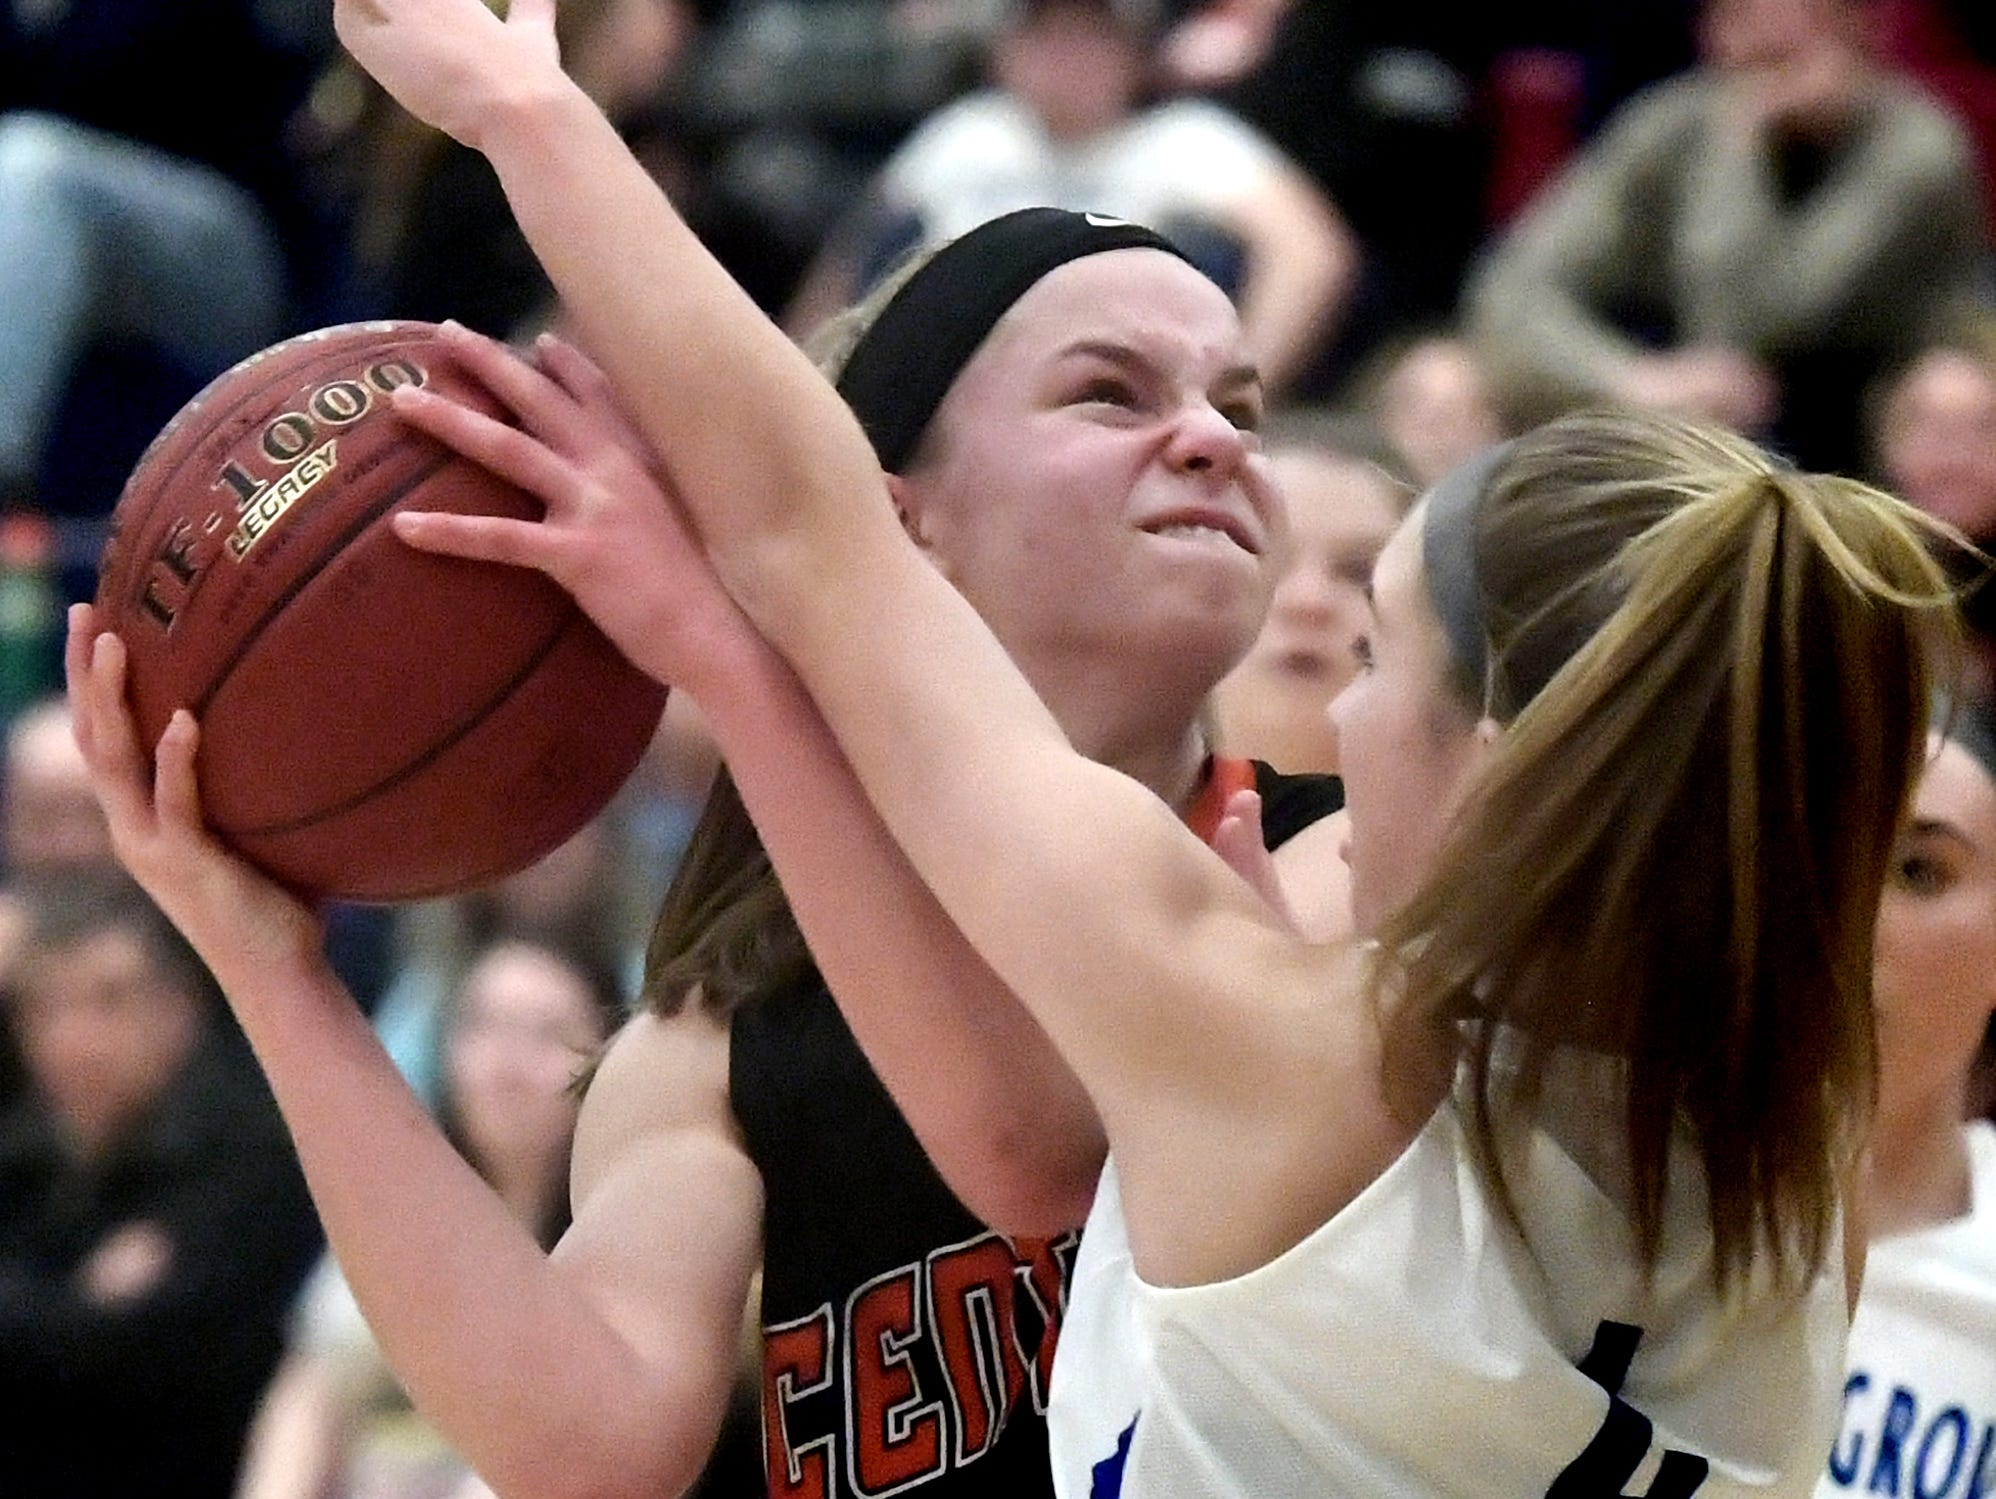 Central York's Sarah Berman is pressured by Spring Grove's Addyson Wagman in basketball action at Spring Grove Tuesday, Jan. 8, 2019. Bill Kalina photo